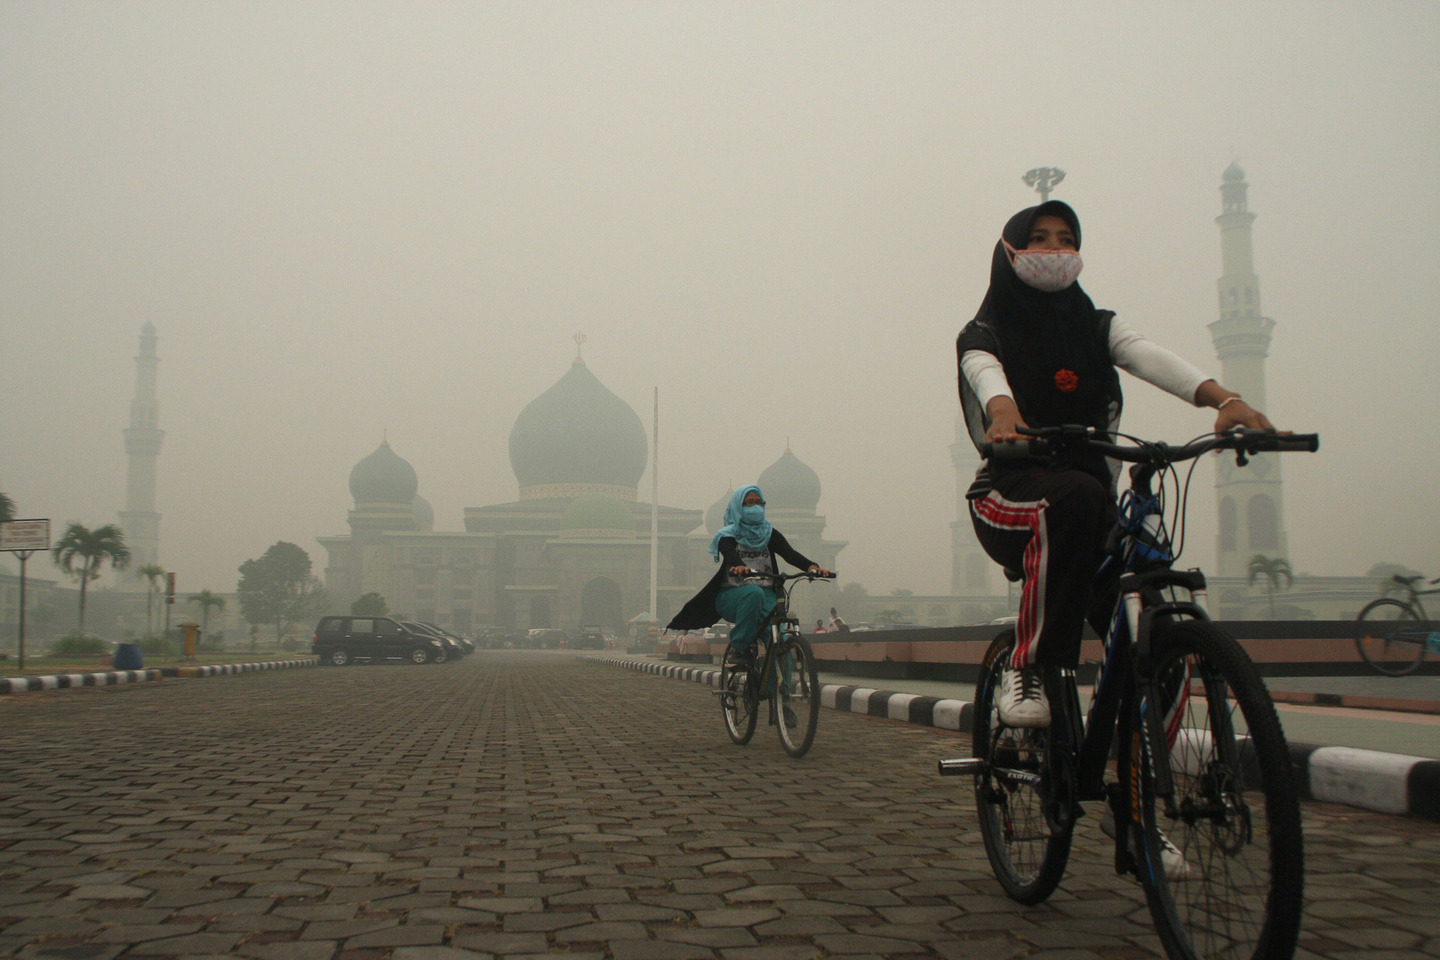 Haze Cover Riau Province - Indonesia